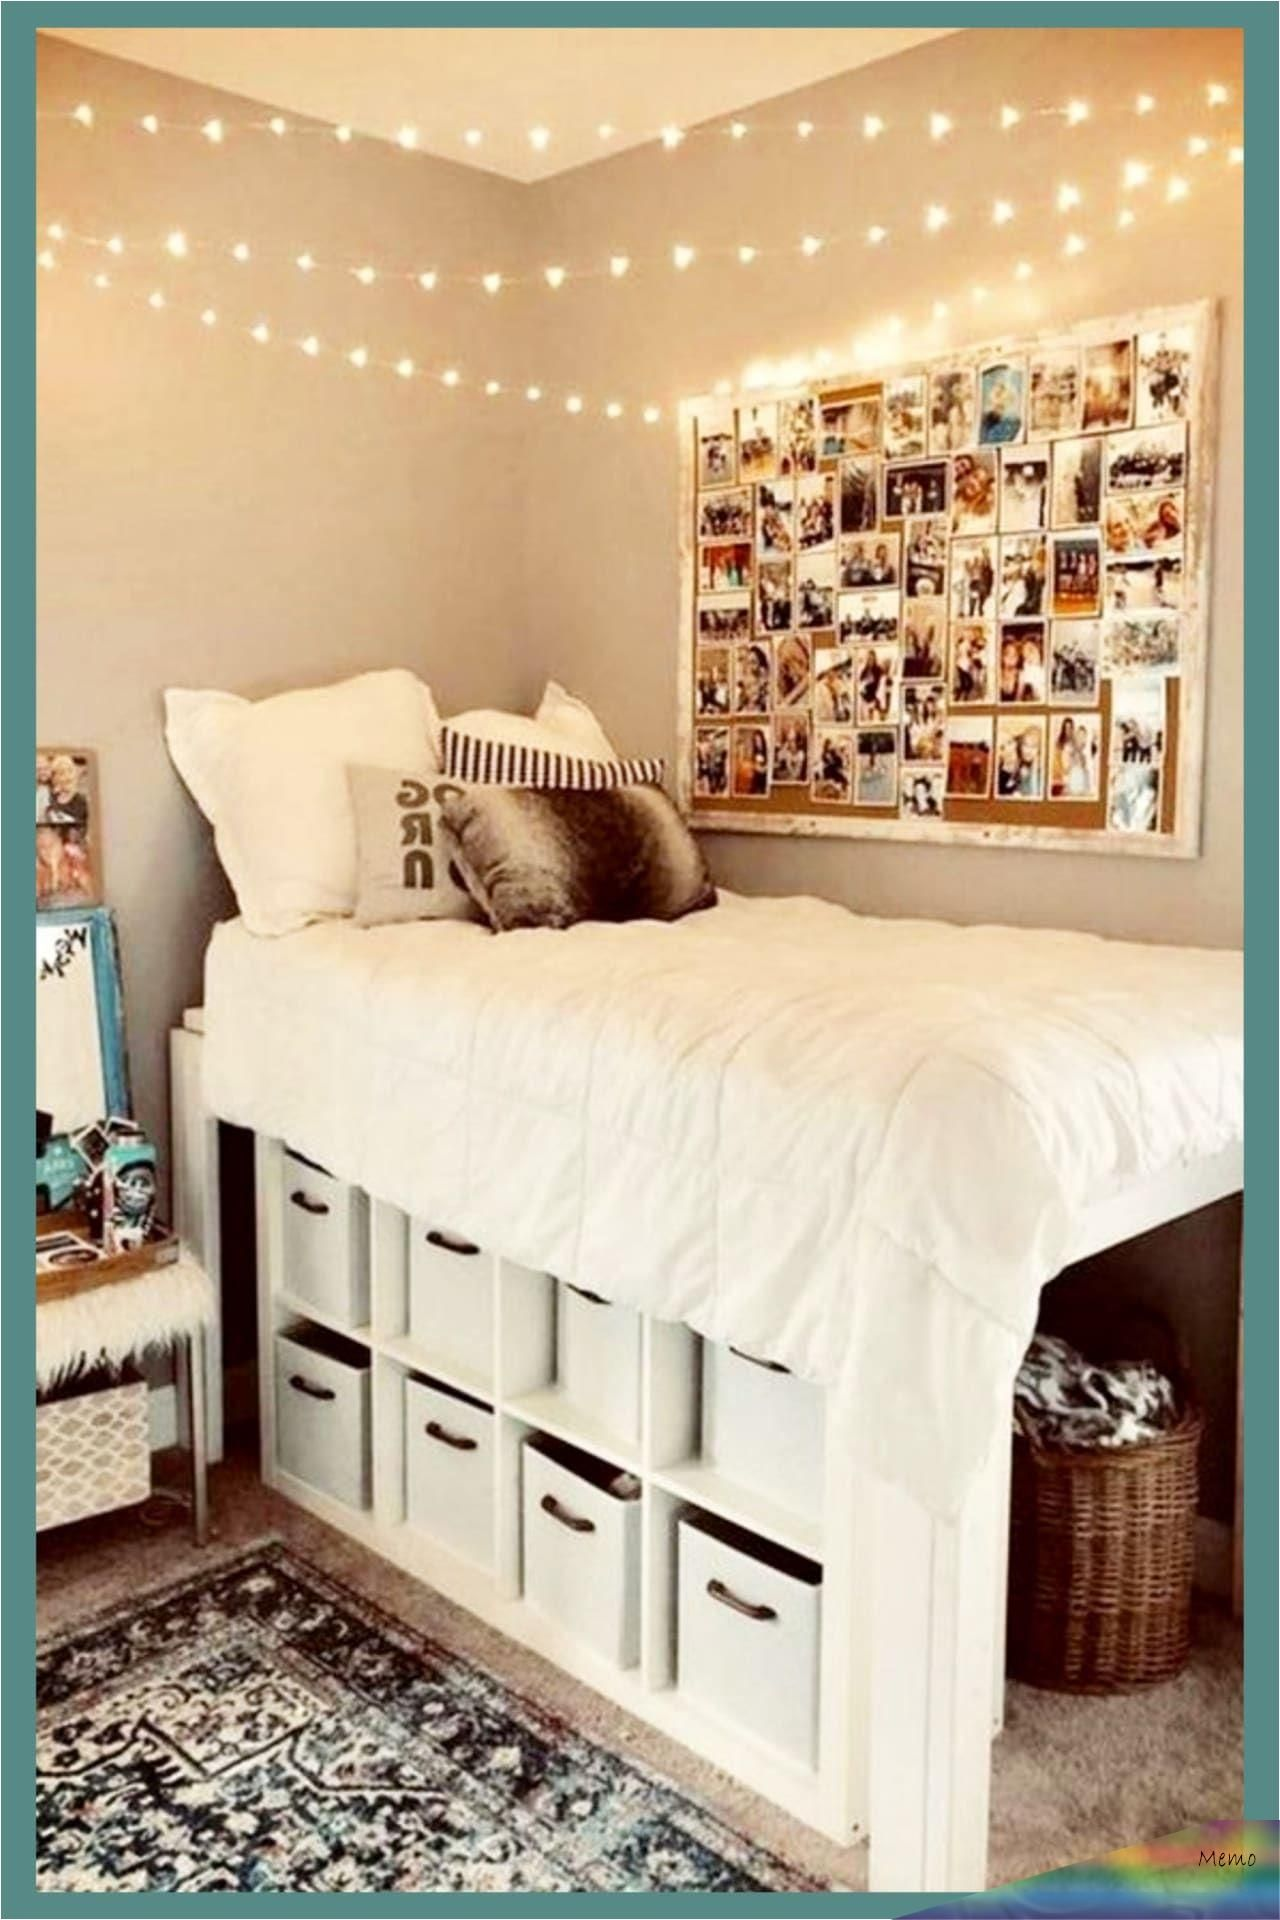 • Cute Do It Yourself Dorm Room Ideas and DIY Dorm Room Hacks We Love • Clever and creative coll